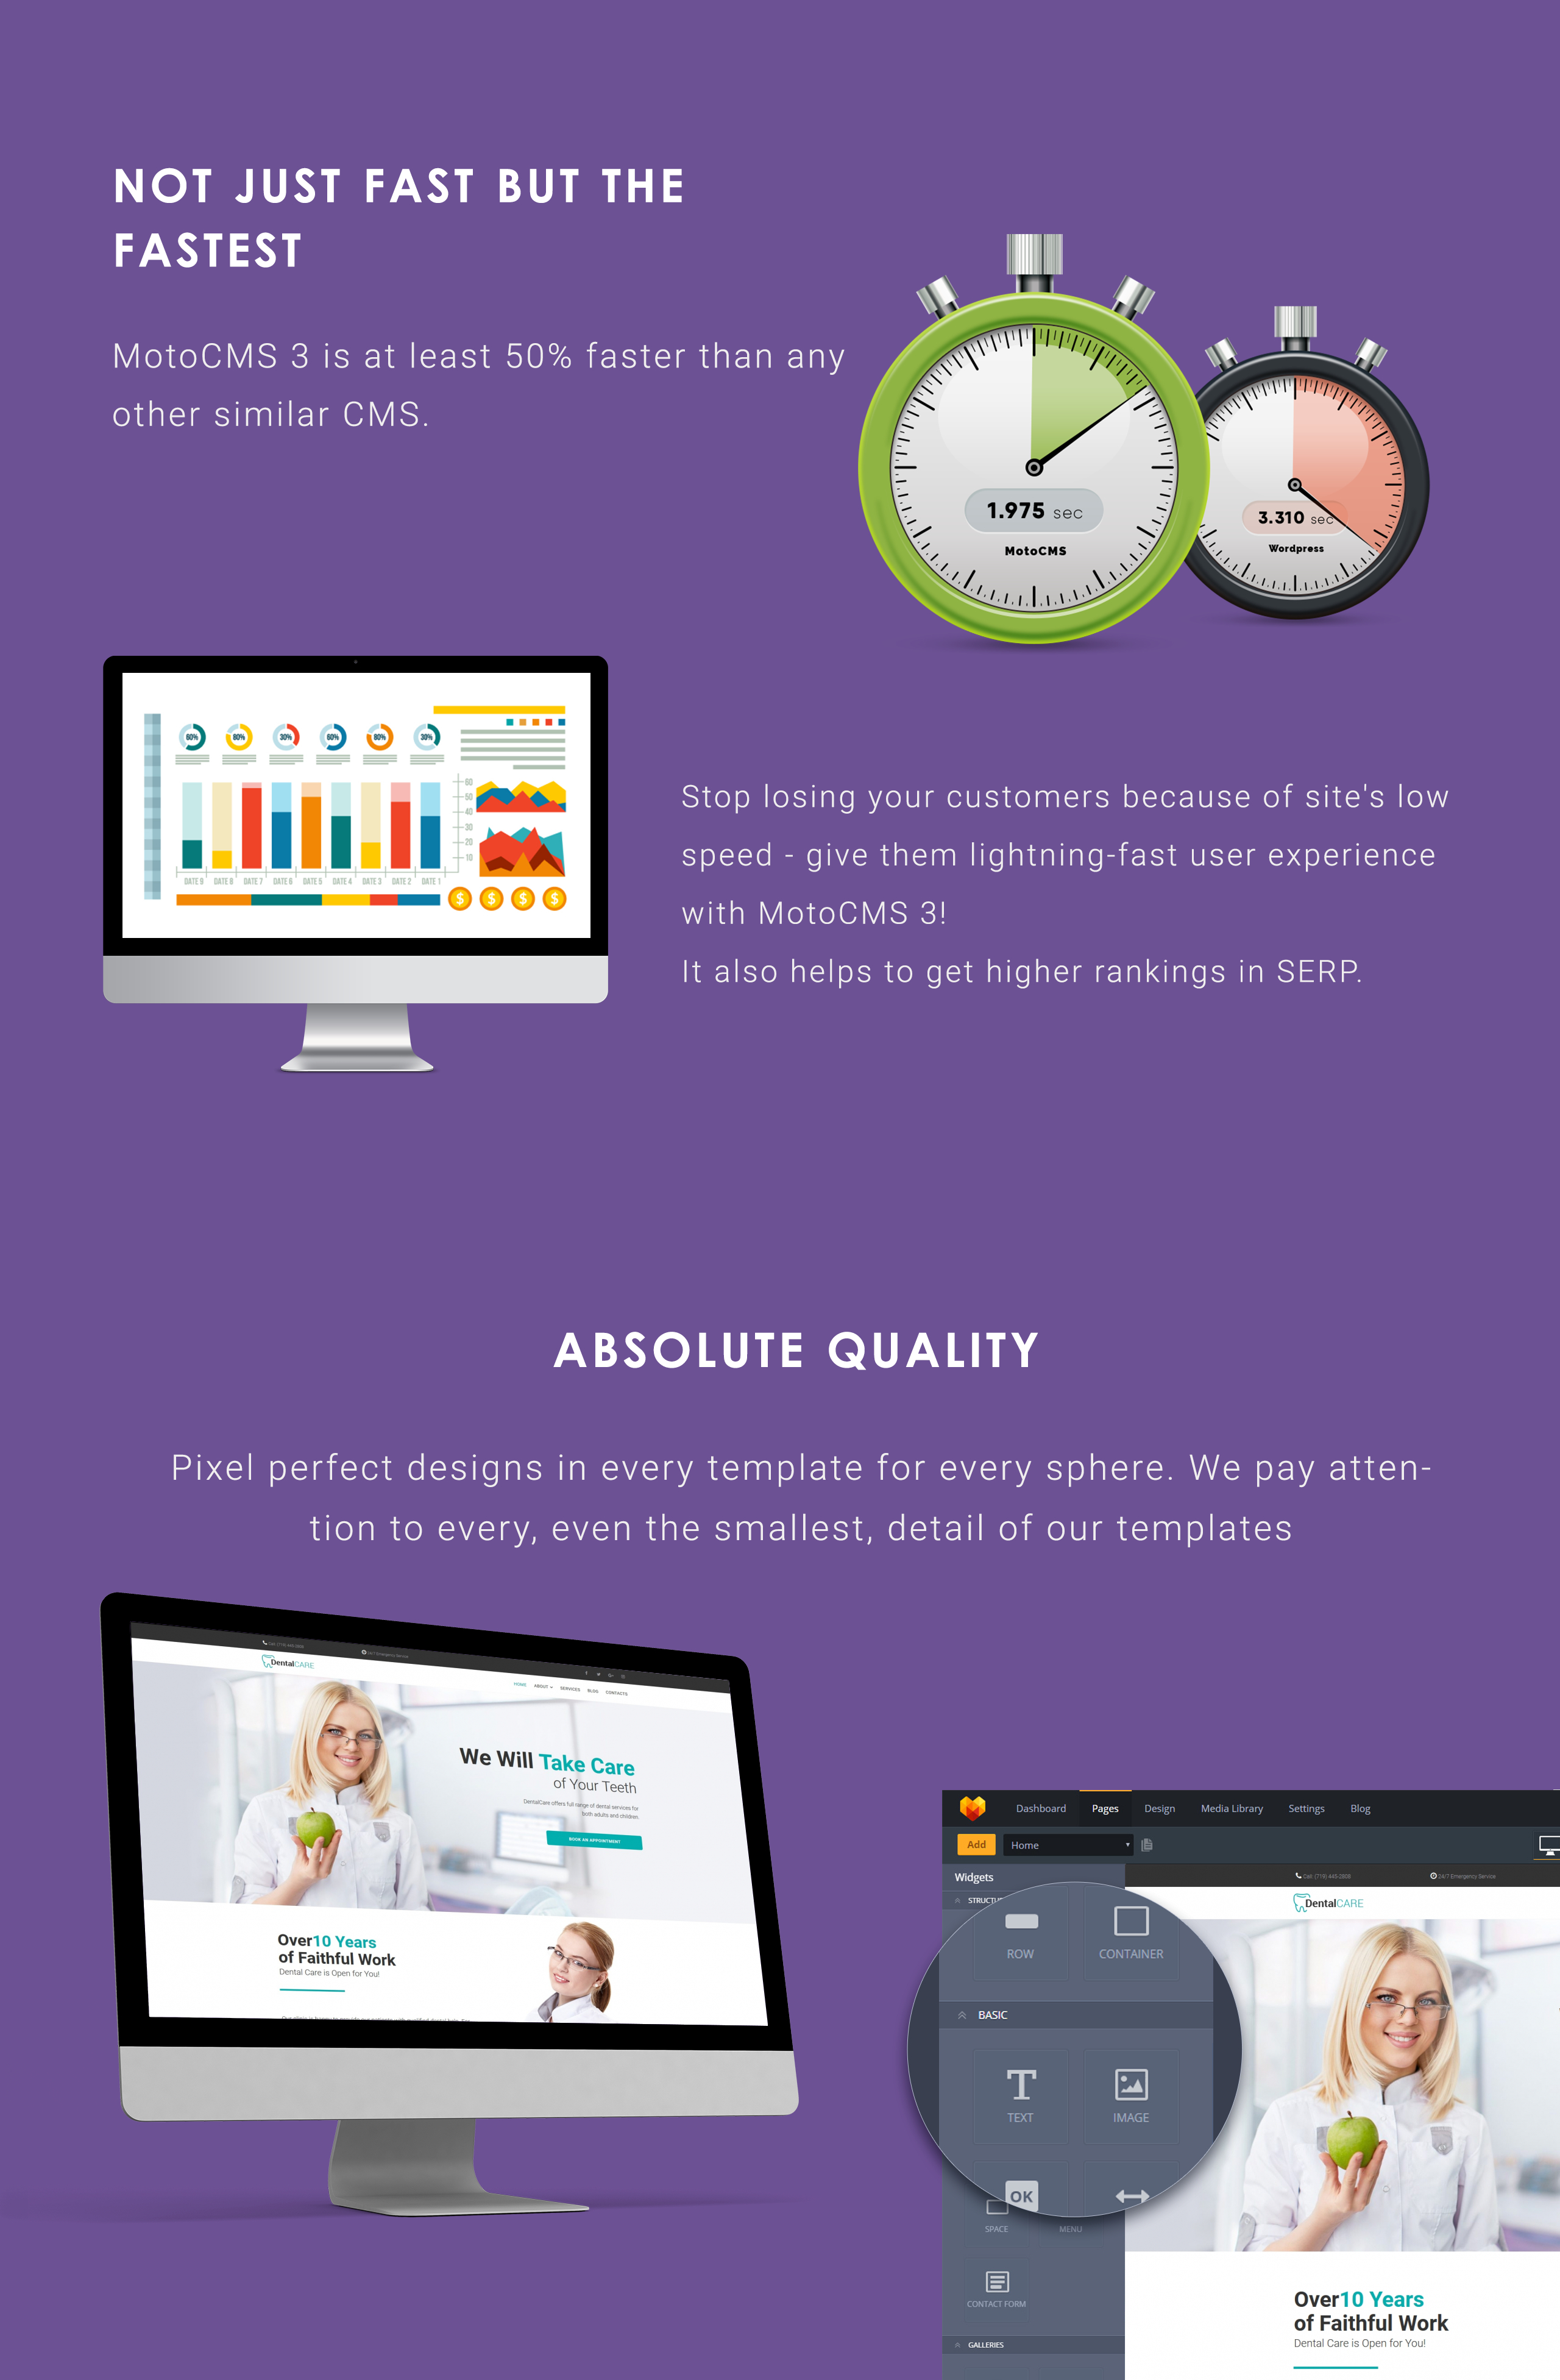 DentalCare - Dental Clinic Moto CMS 3 Template